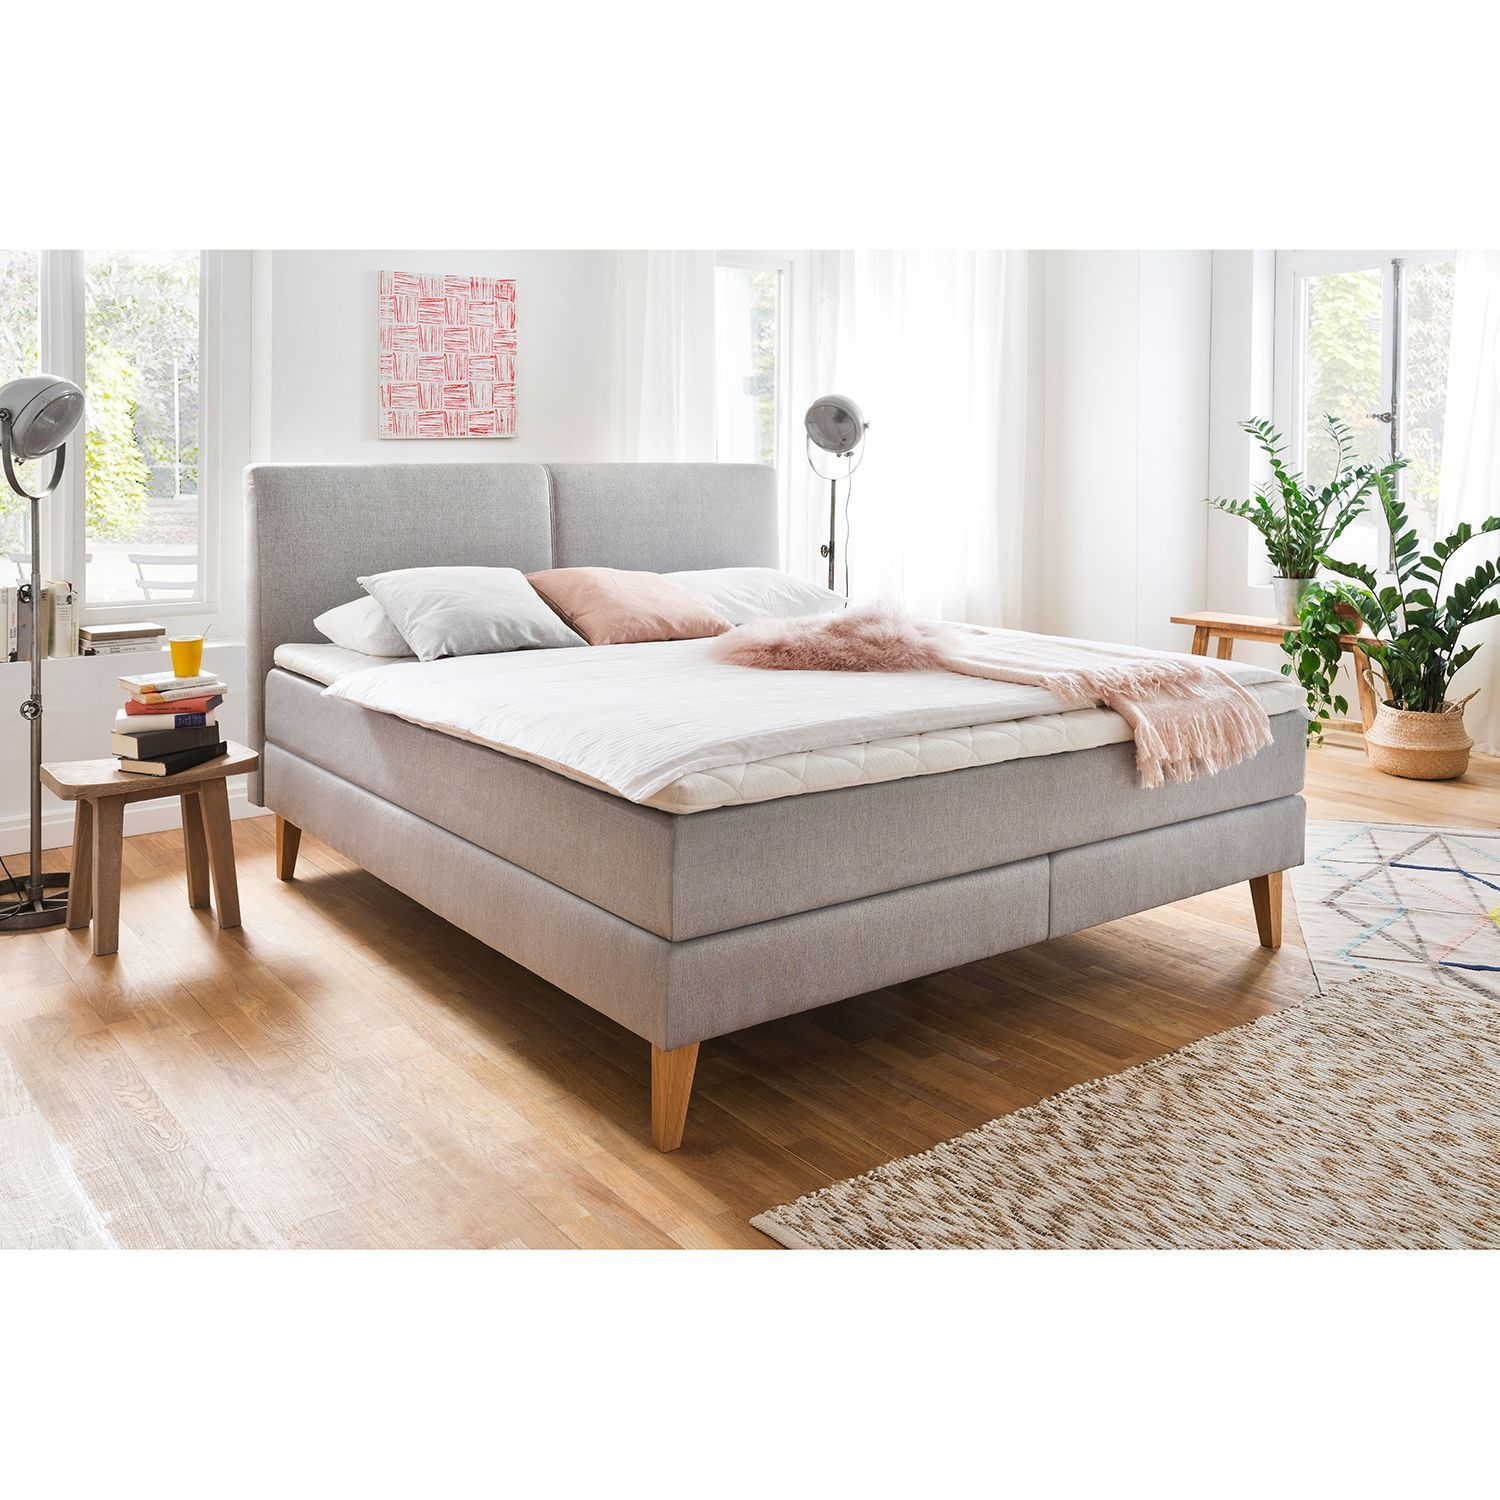 Meise Moebel Boxspringbett Greta 180x200 Cm Webstoff Hellgrau Mit Matratze In 2020 Farmhouse Chic Dining Room Box Spring Bed Furniture